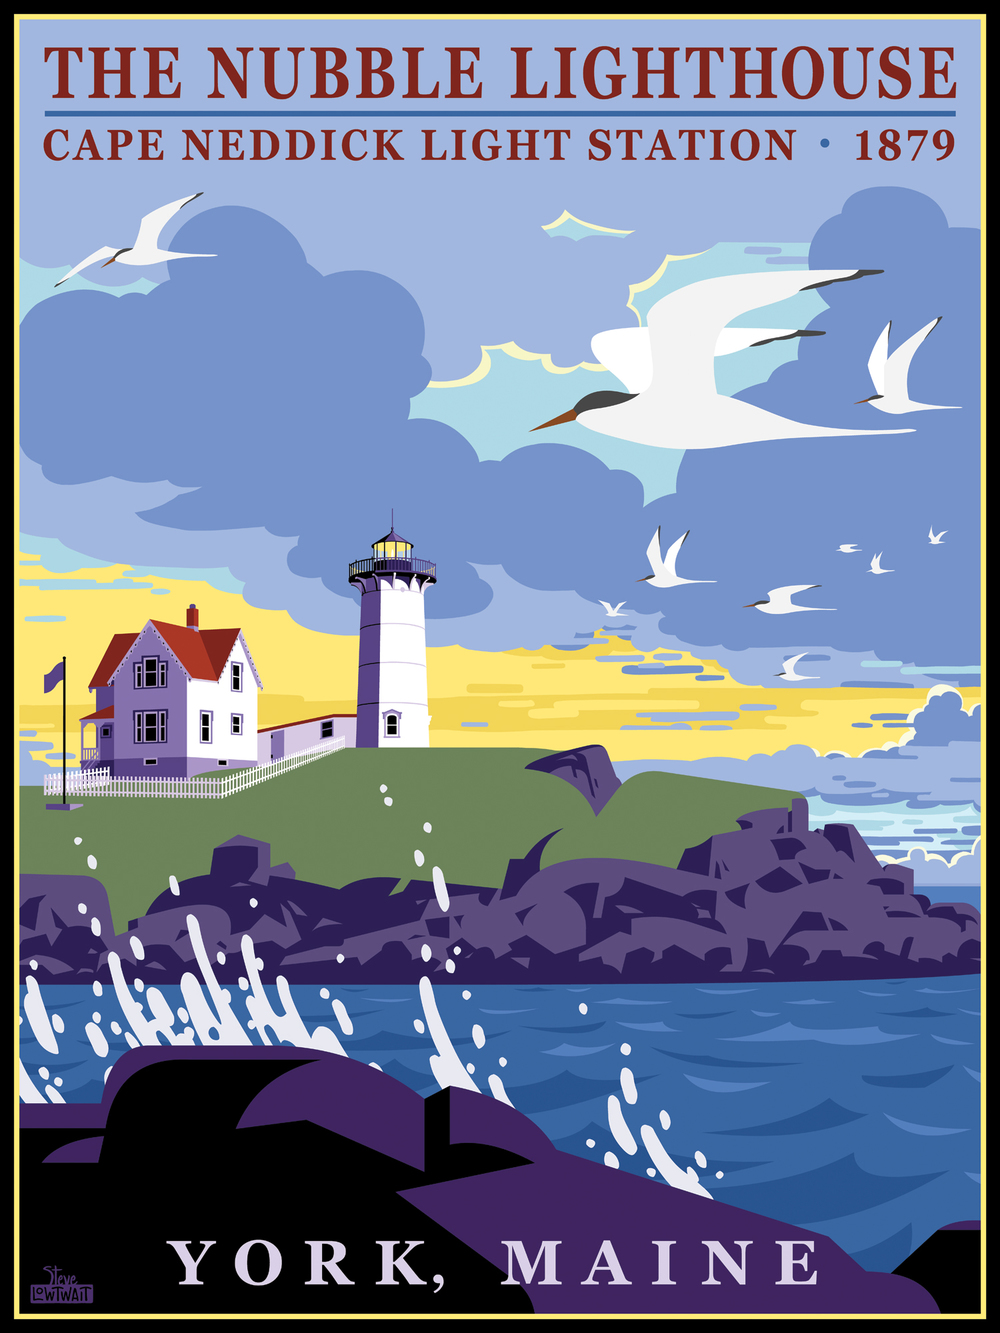 Nubble Lighthouse • Client: York, Maine Chamber of Commerce